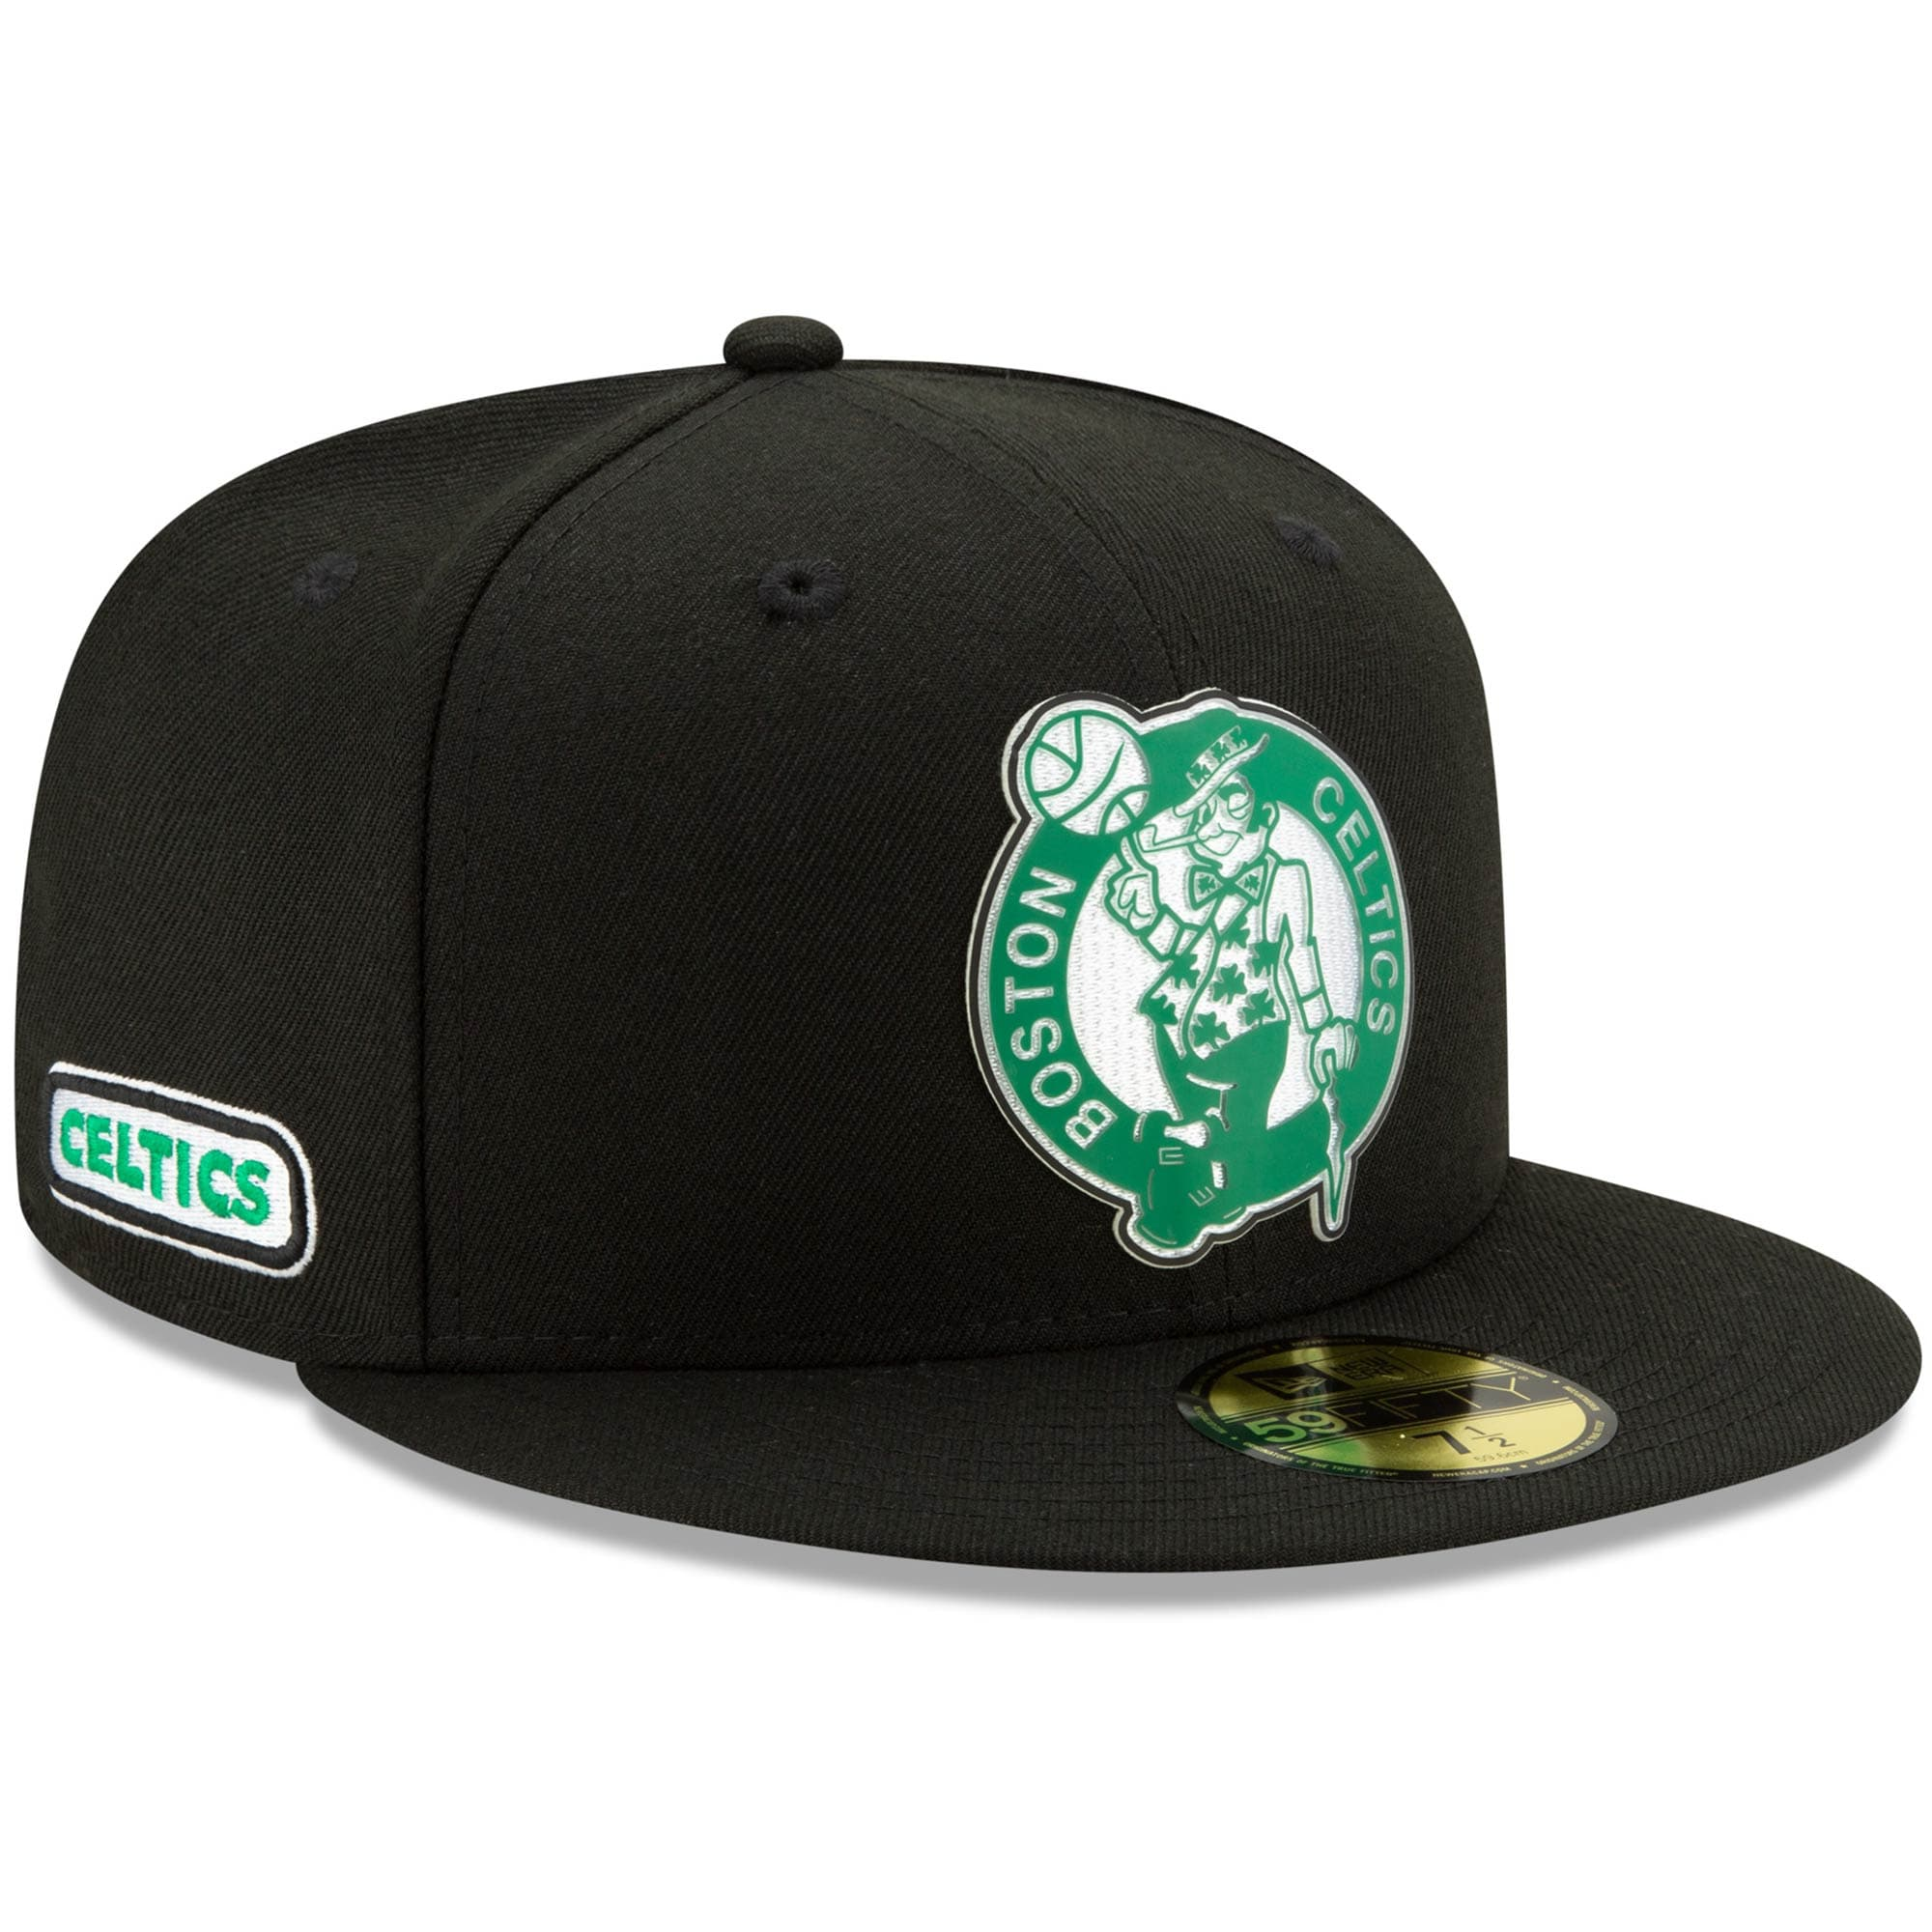 Boston Celtics New Era Official Back Half 59FIFTY Fitted Hat - Black